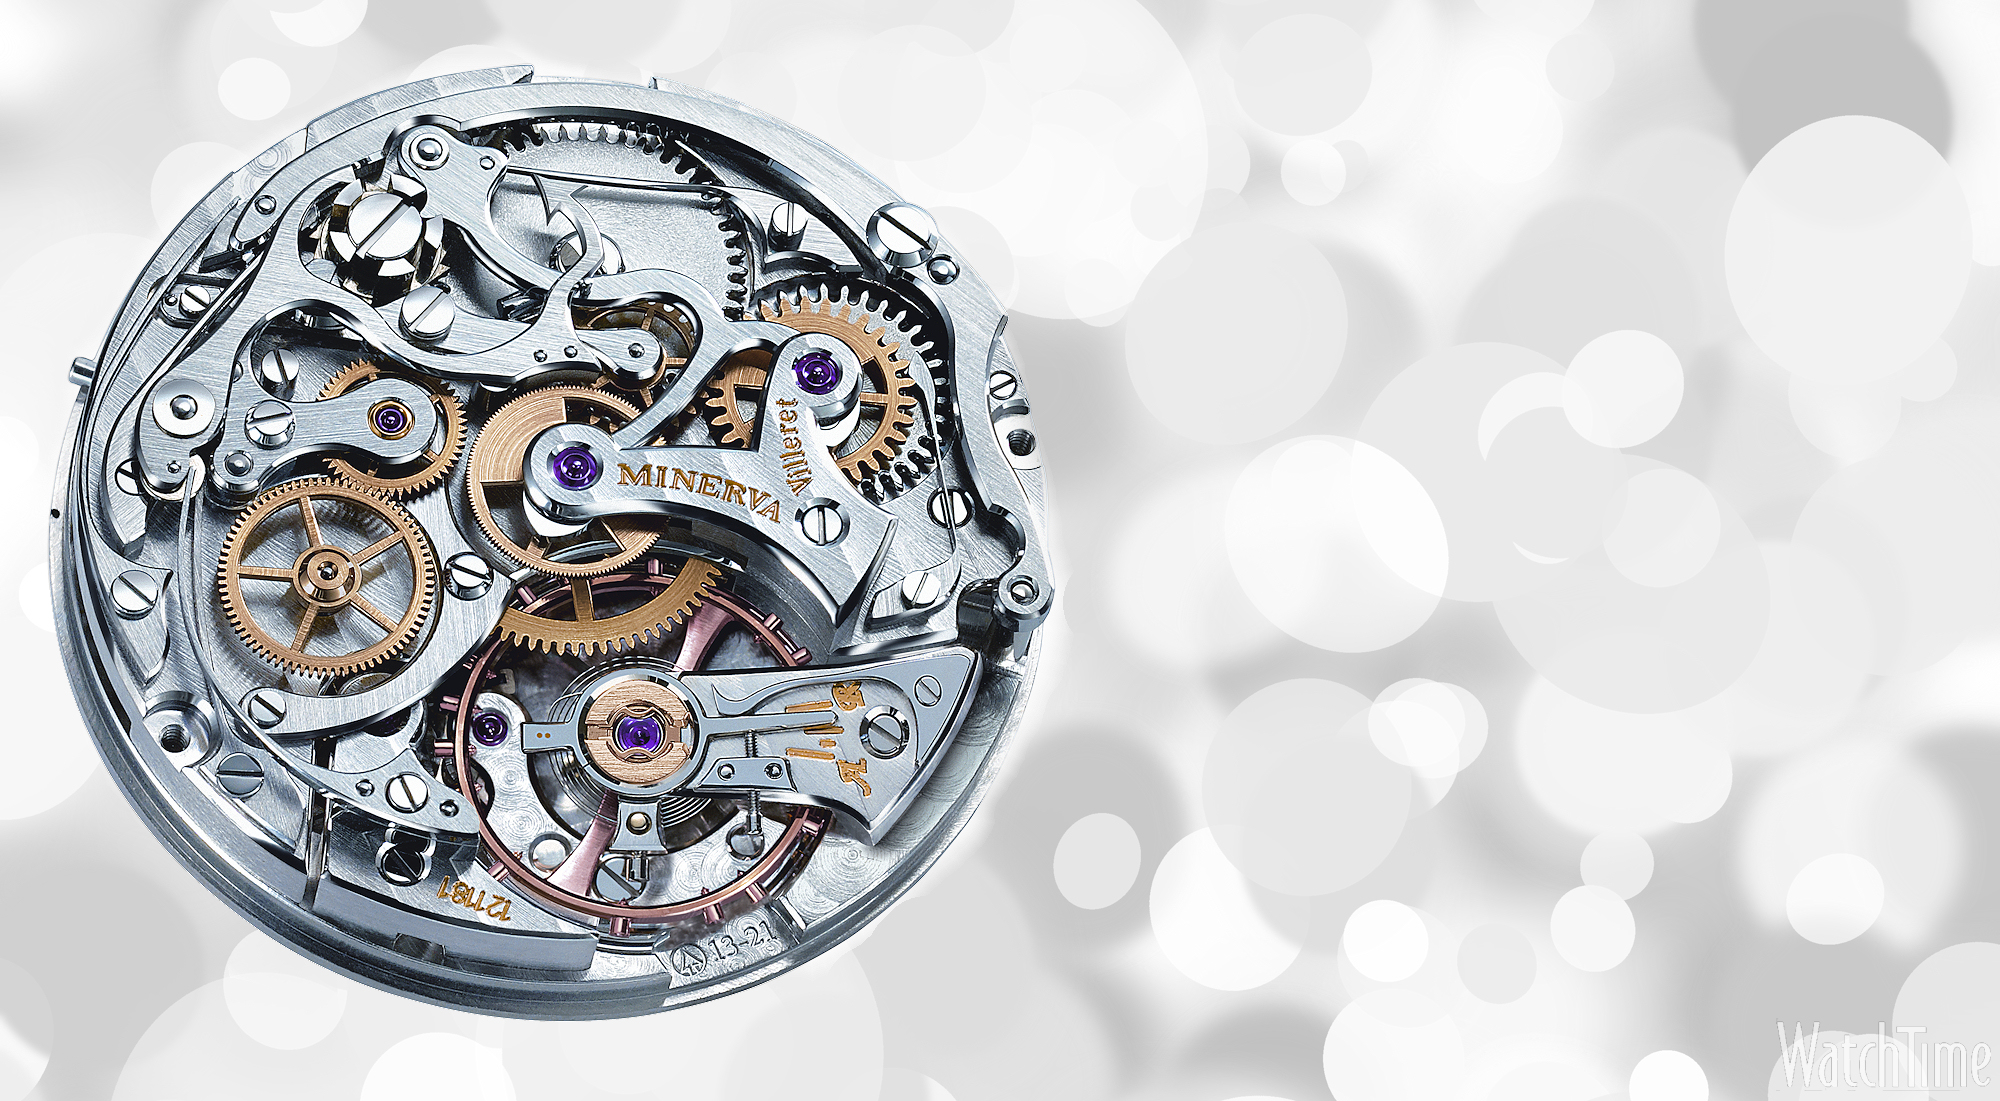 Swiss and French Mechanical Watchmaking Awarded UNESCO Intangible Heritage Status